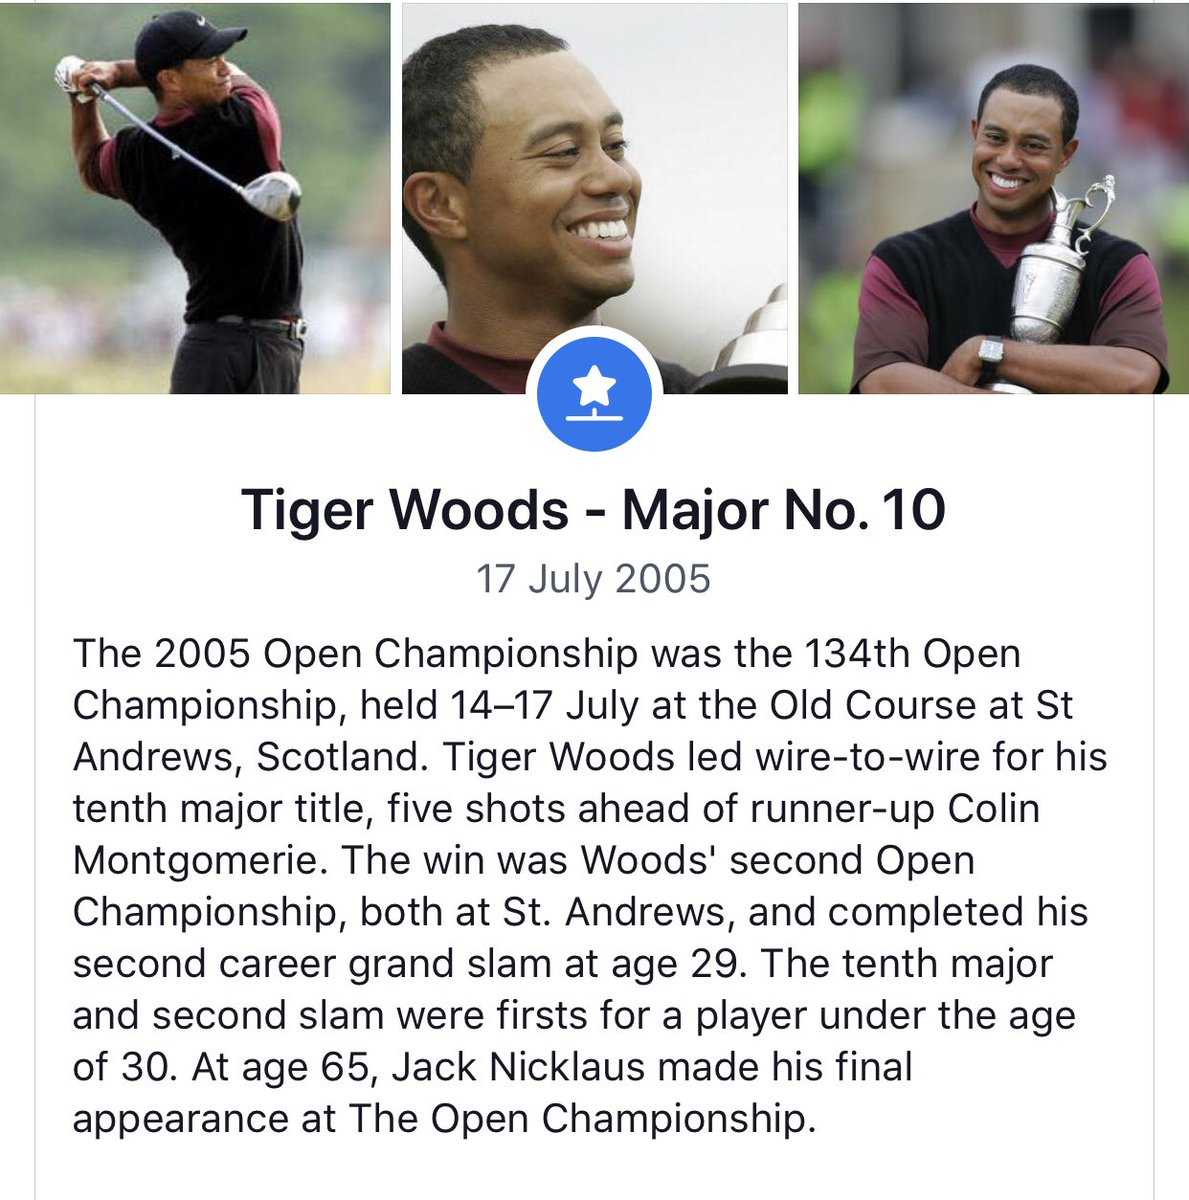 On this day 14 years ago @TigerWoods won his tenth major at St Andrews @TheOpen #goingformajor16